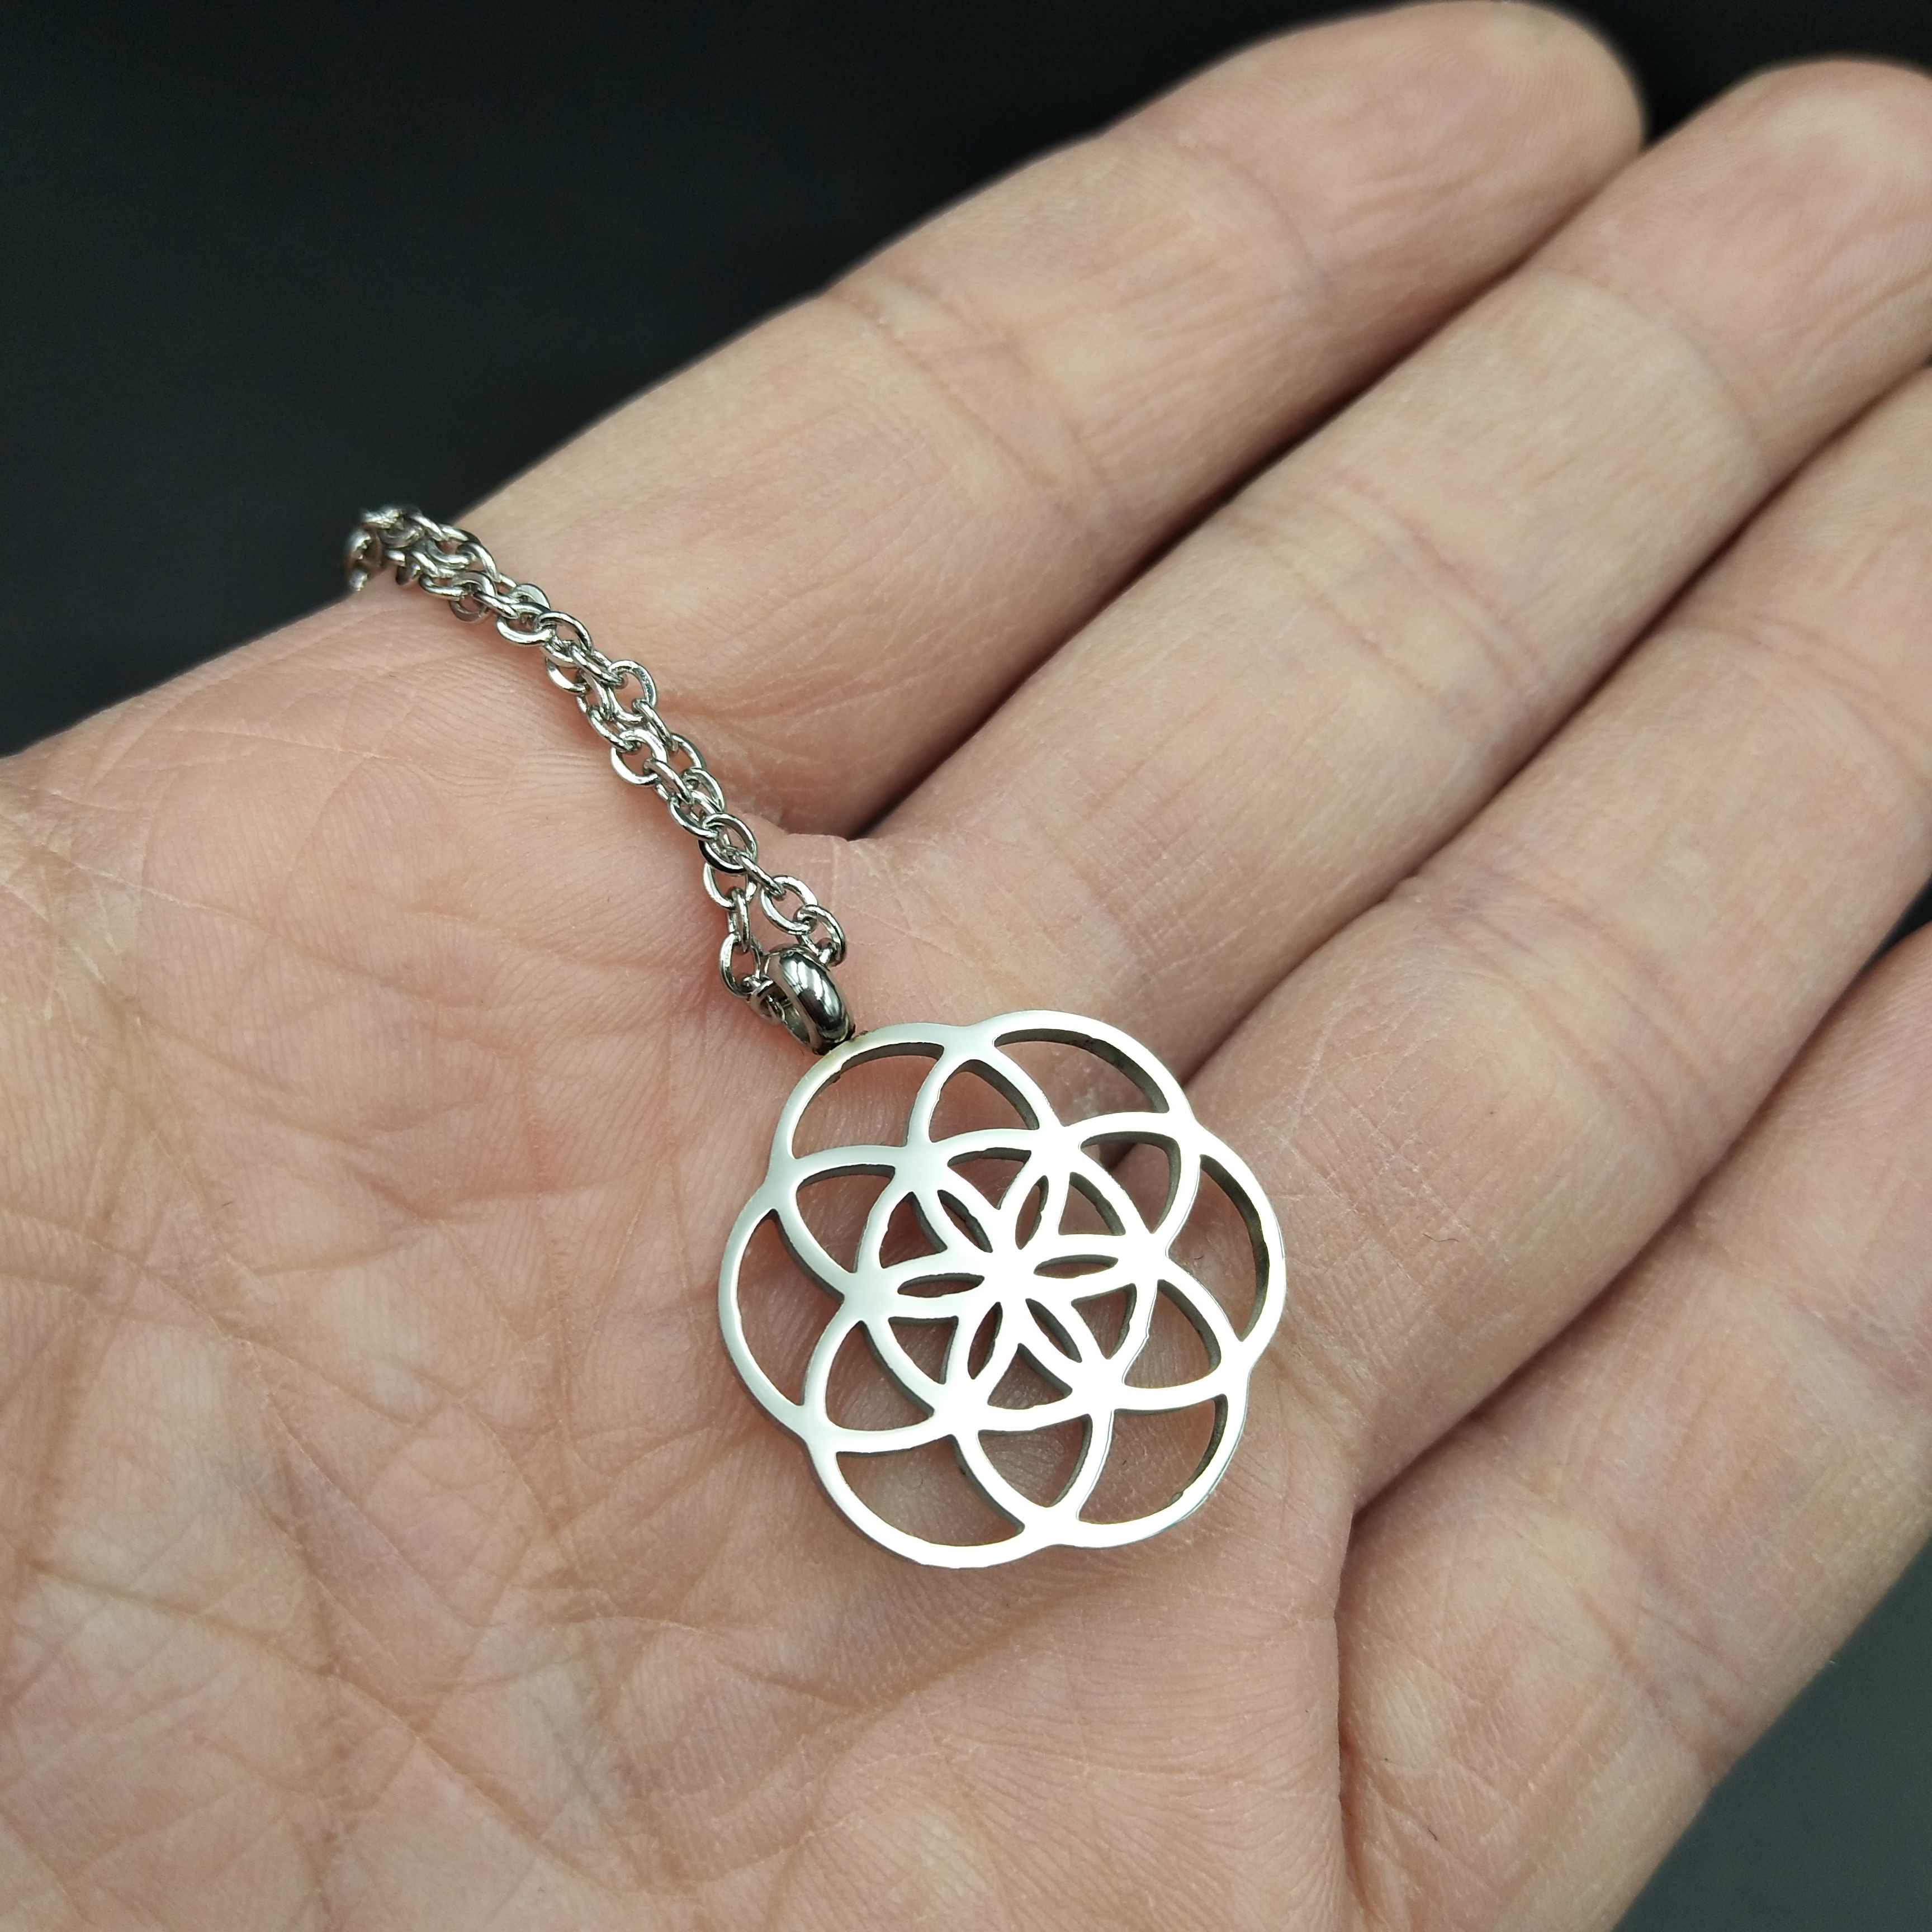 Seed of life Jewelry Supplies Flower charm PE48 Sacred geometry pendants 16 mm Sterling silver Flower of life Charm